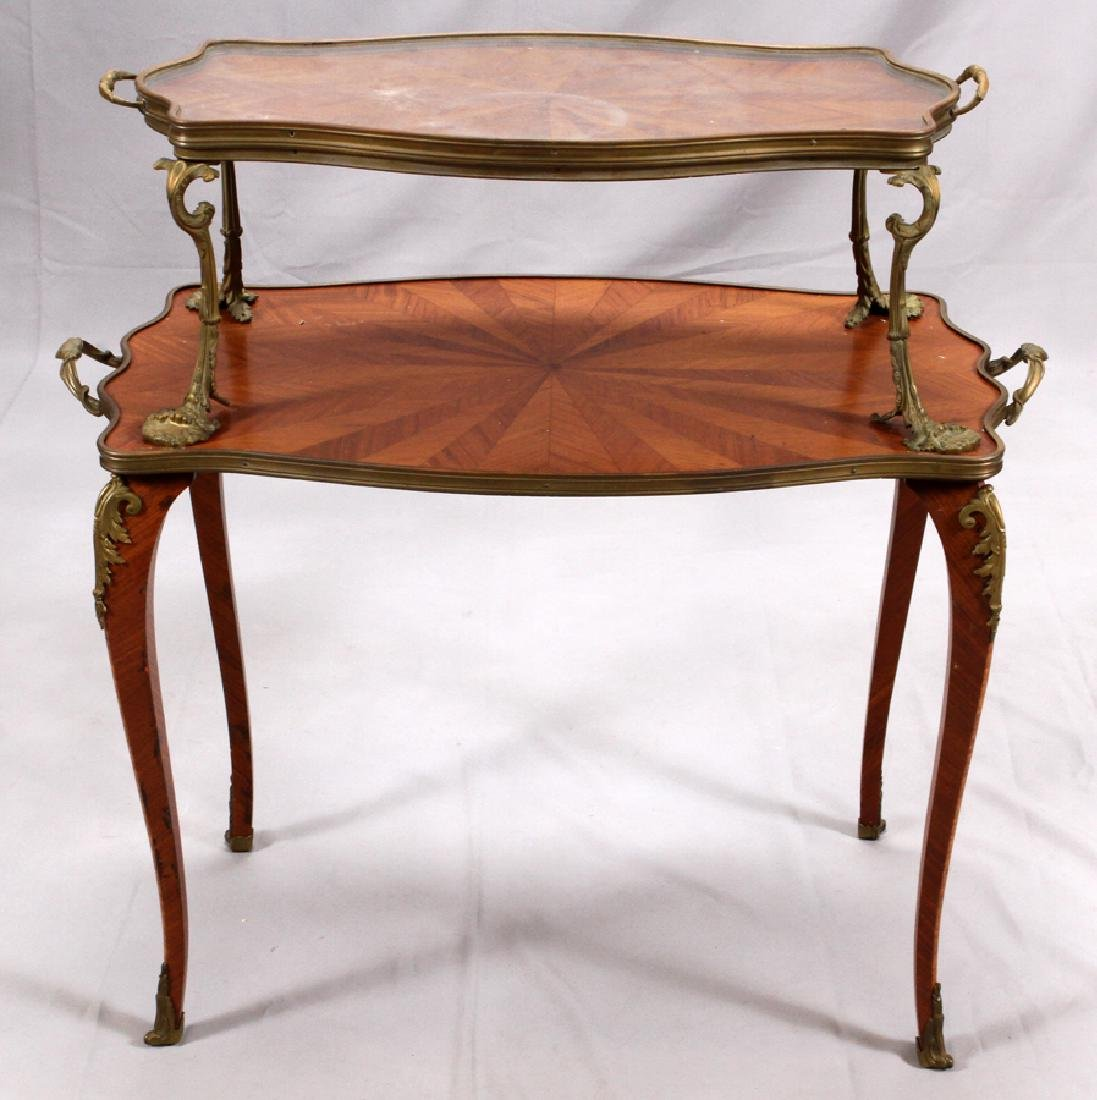 FRENCH, MAHOGANY & BRONZE TRAY TOP TABLE, 19TH C.